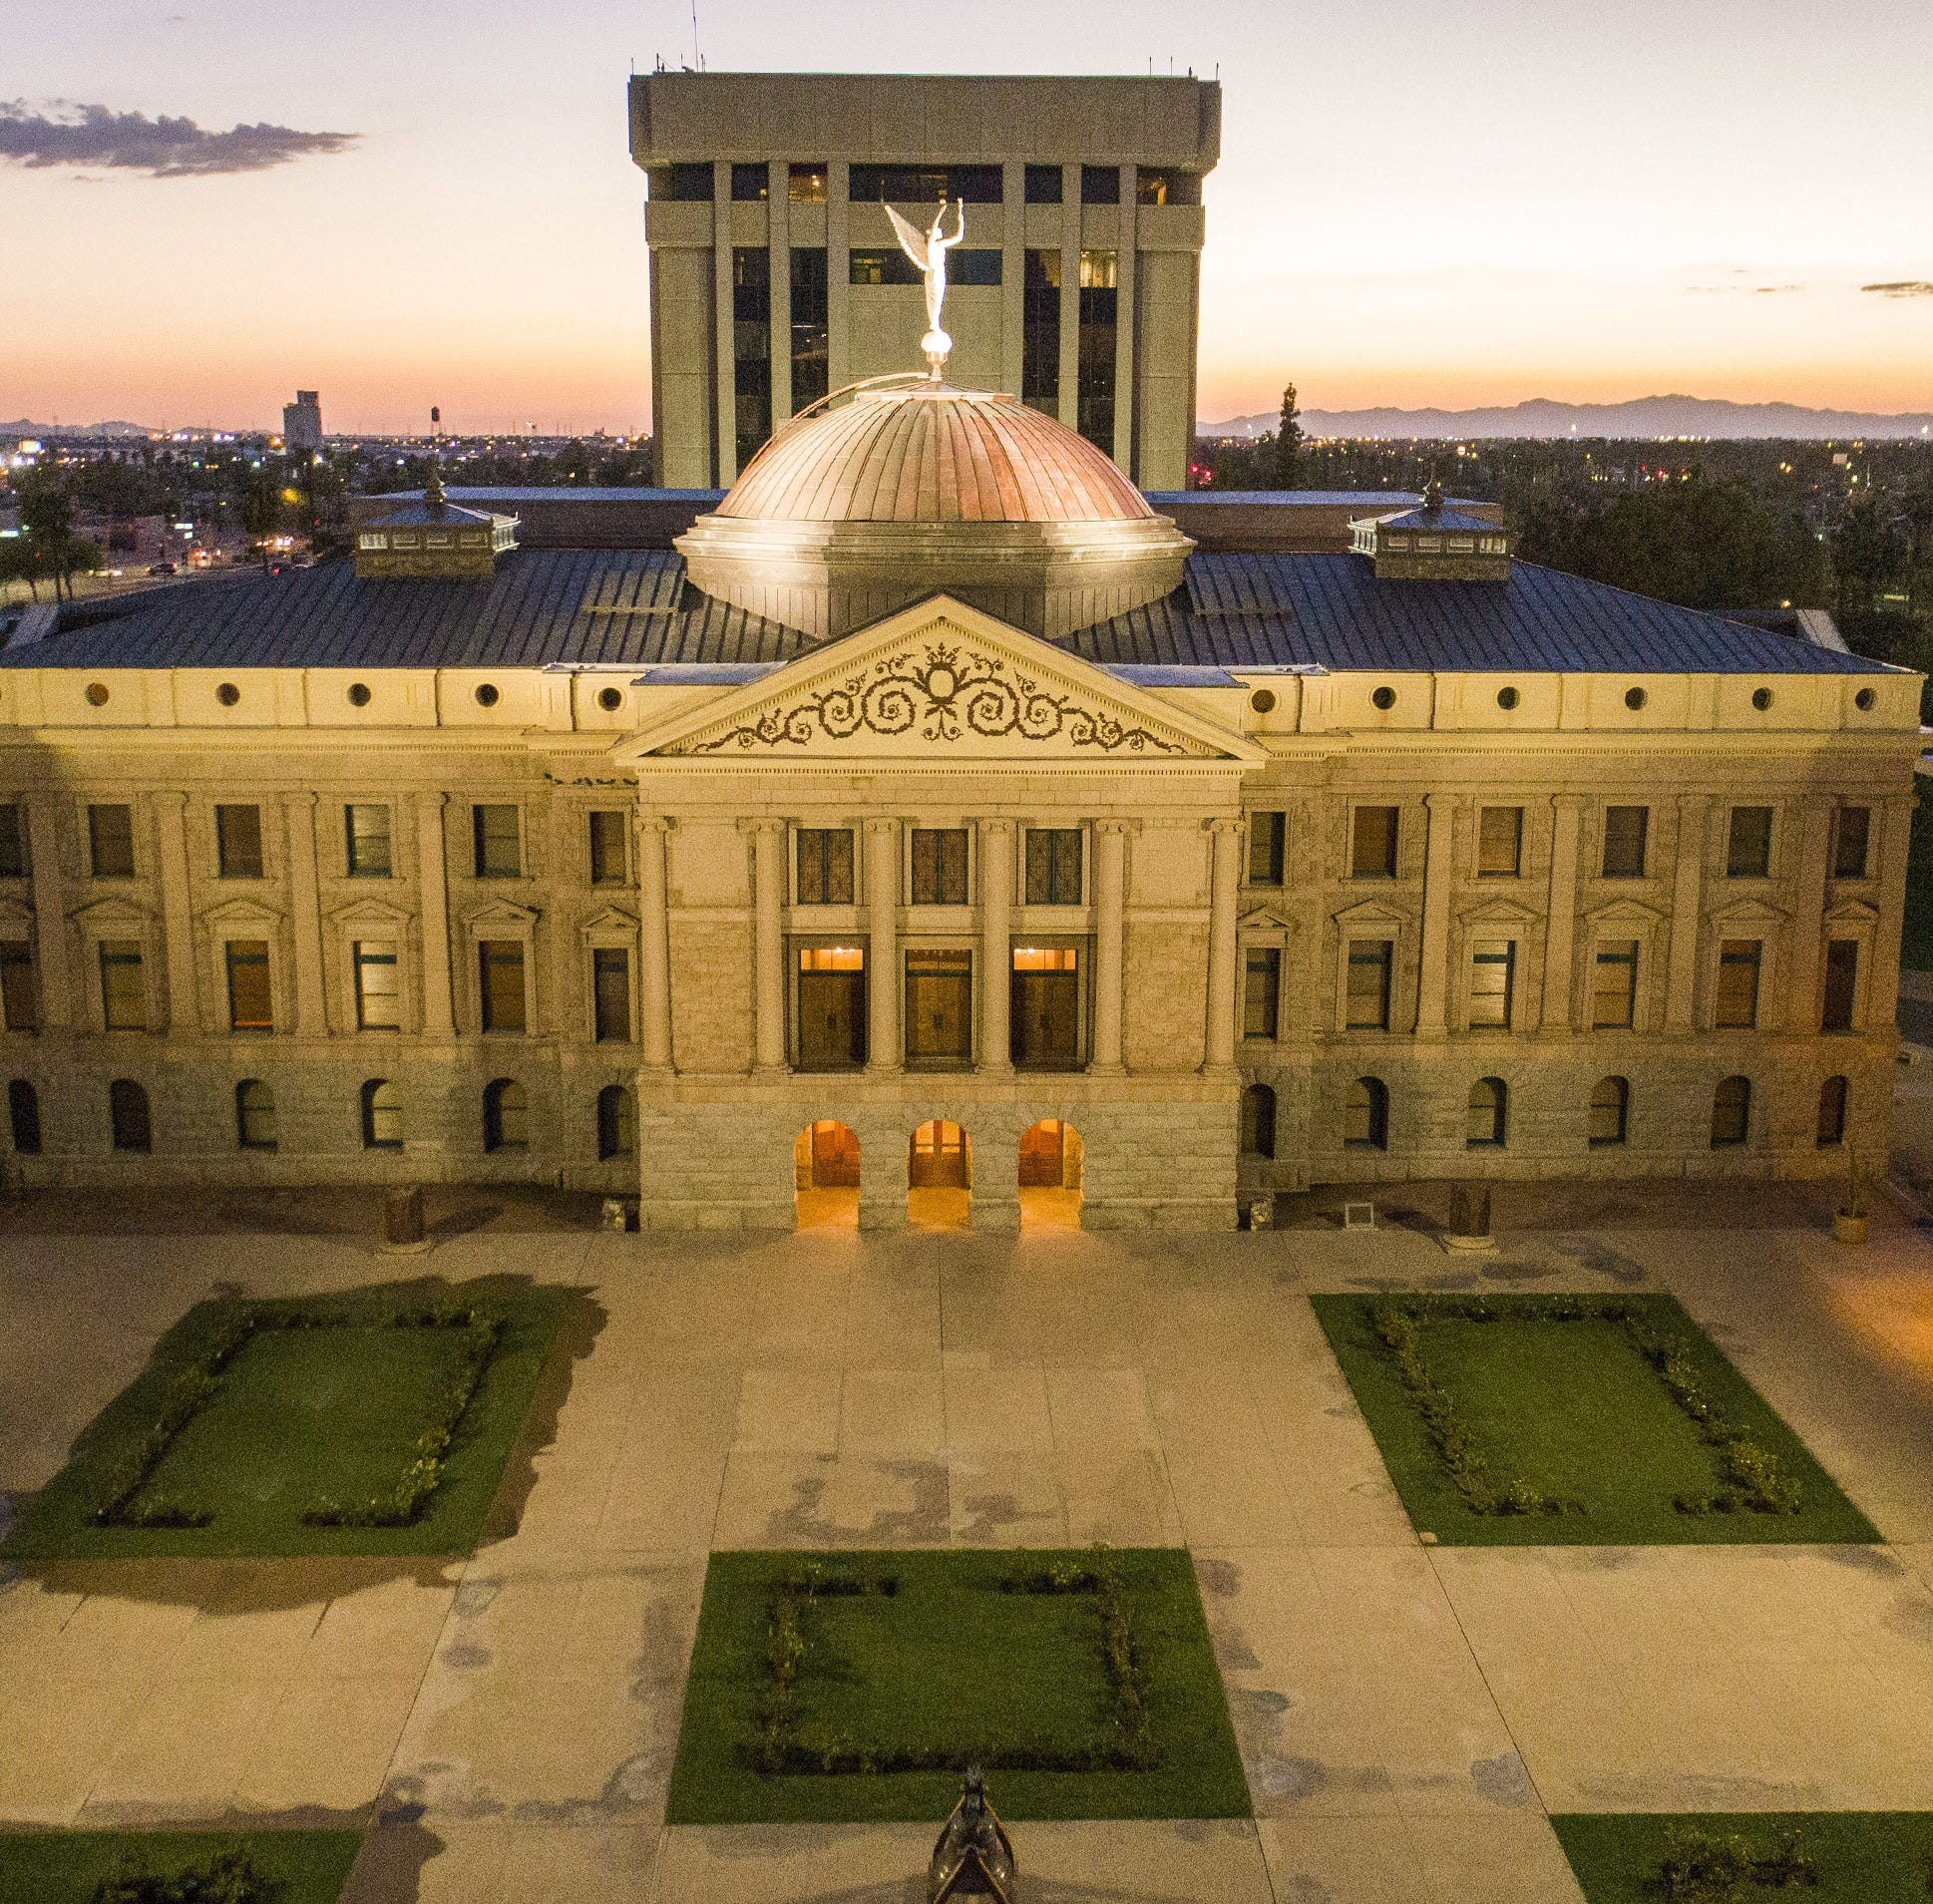 Six stateofficials will be sworn in Monday, Jan. 7, at an inauguration ceremony at the Arizona Capitol.